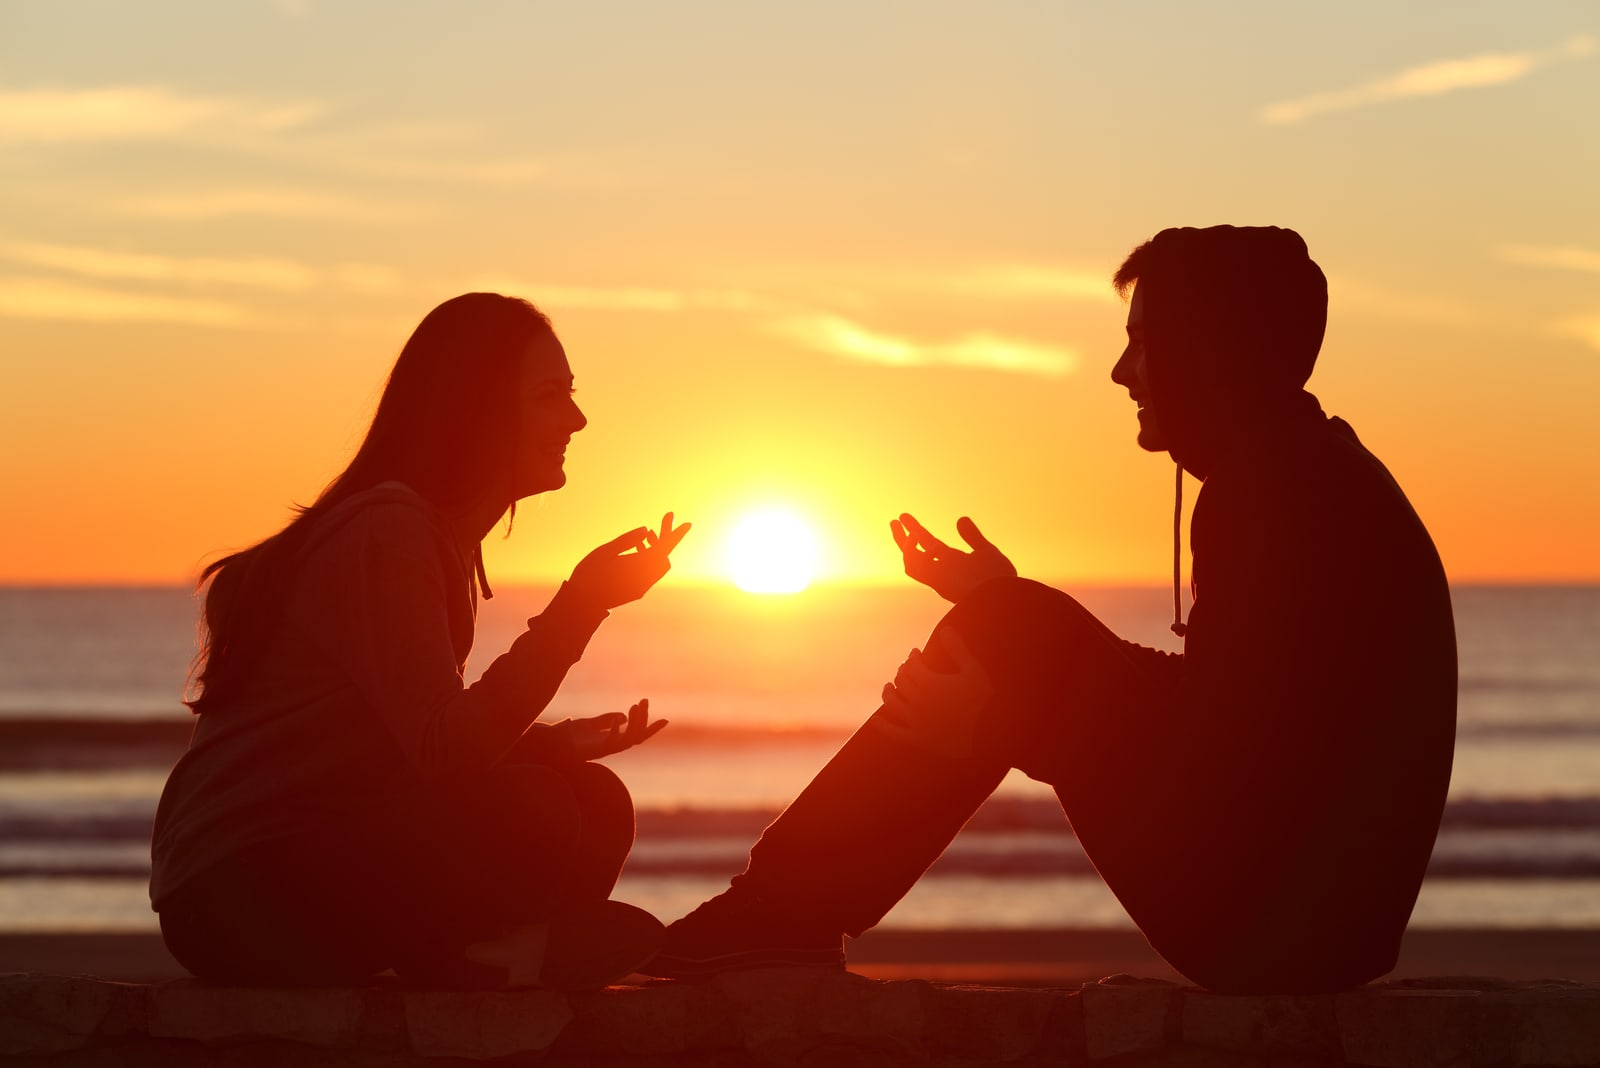 outside on a stone wall at sunset a man and a woman sit and talk